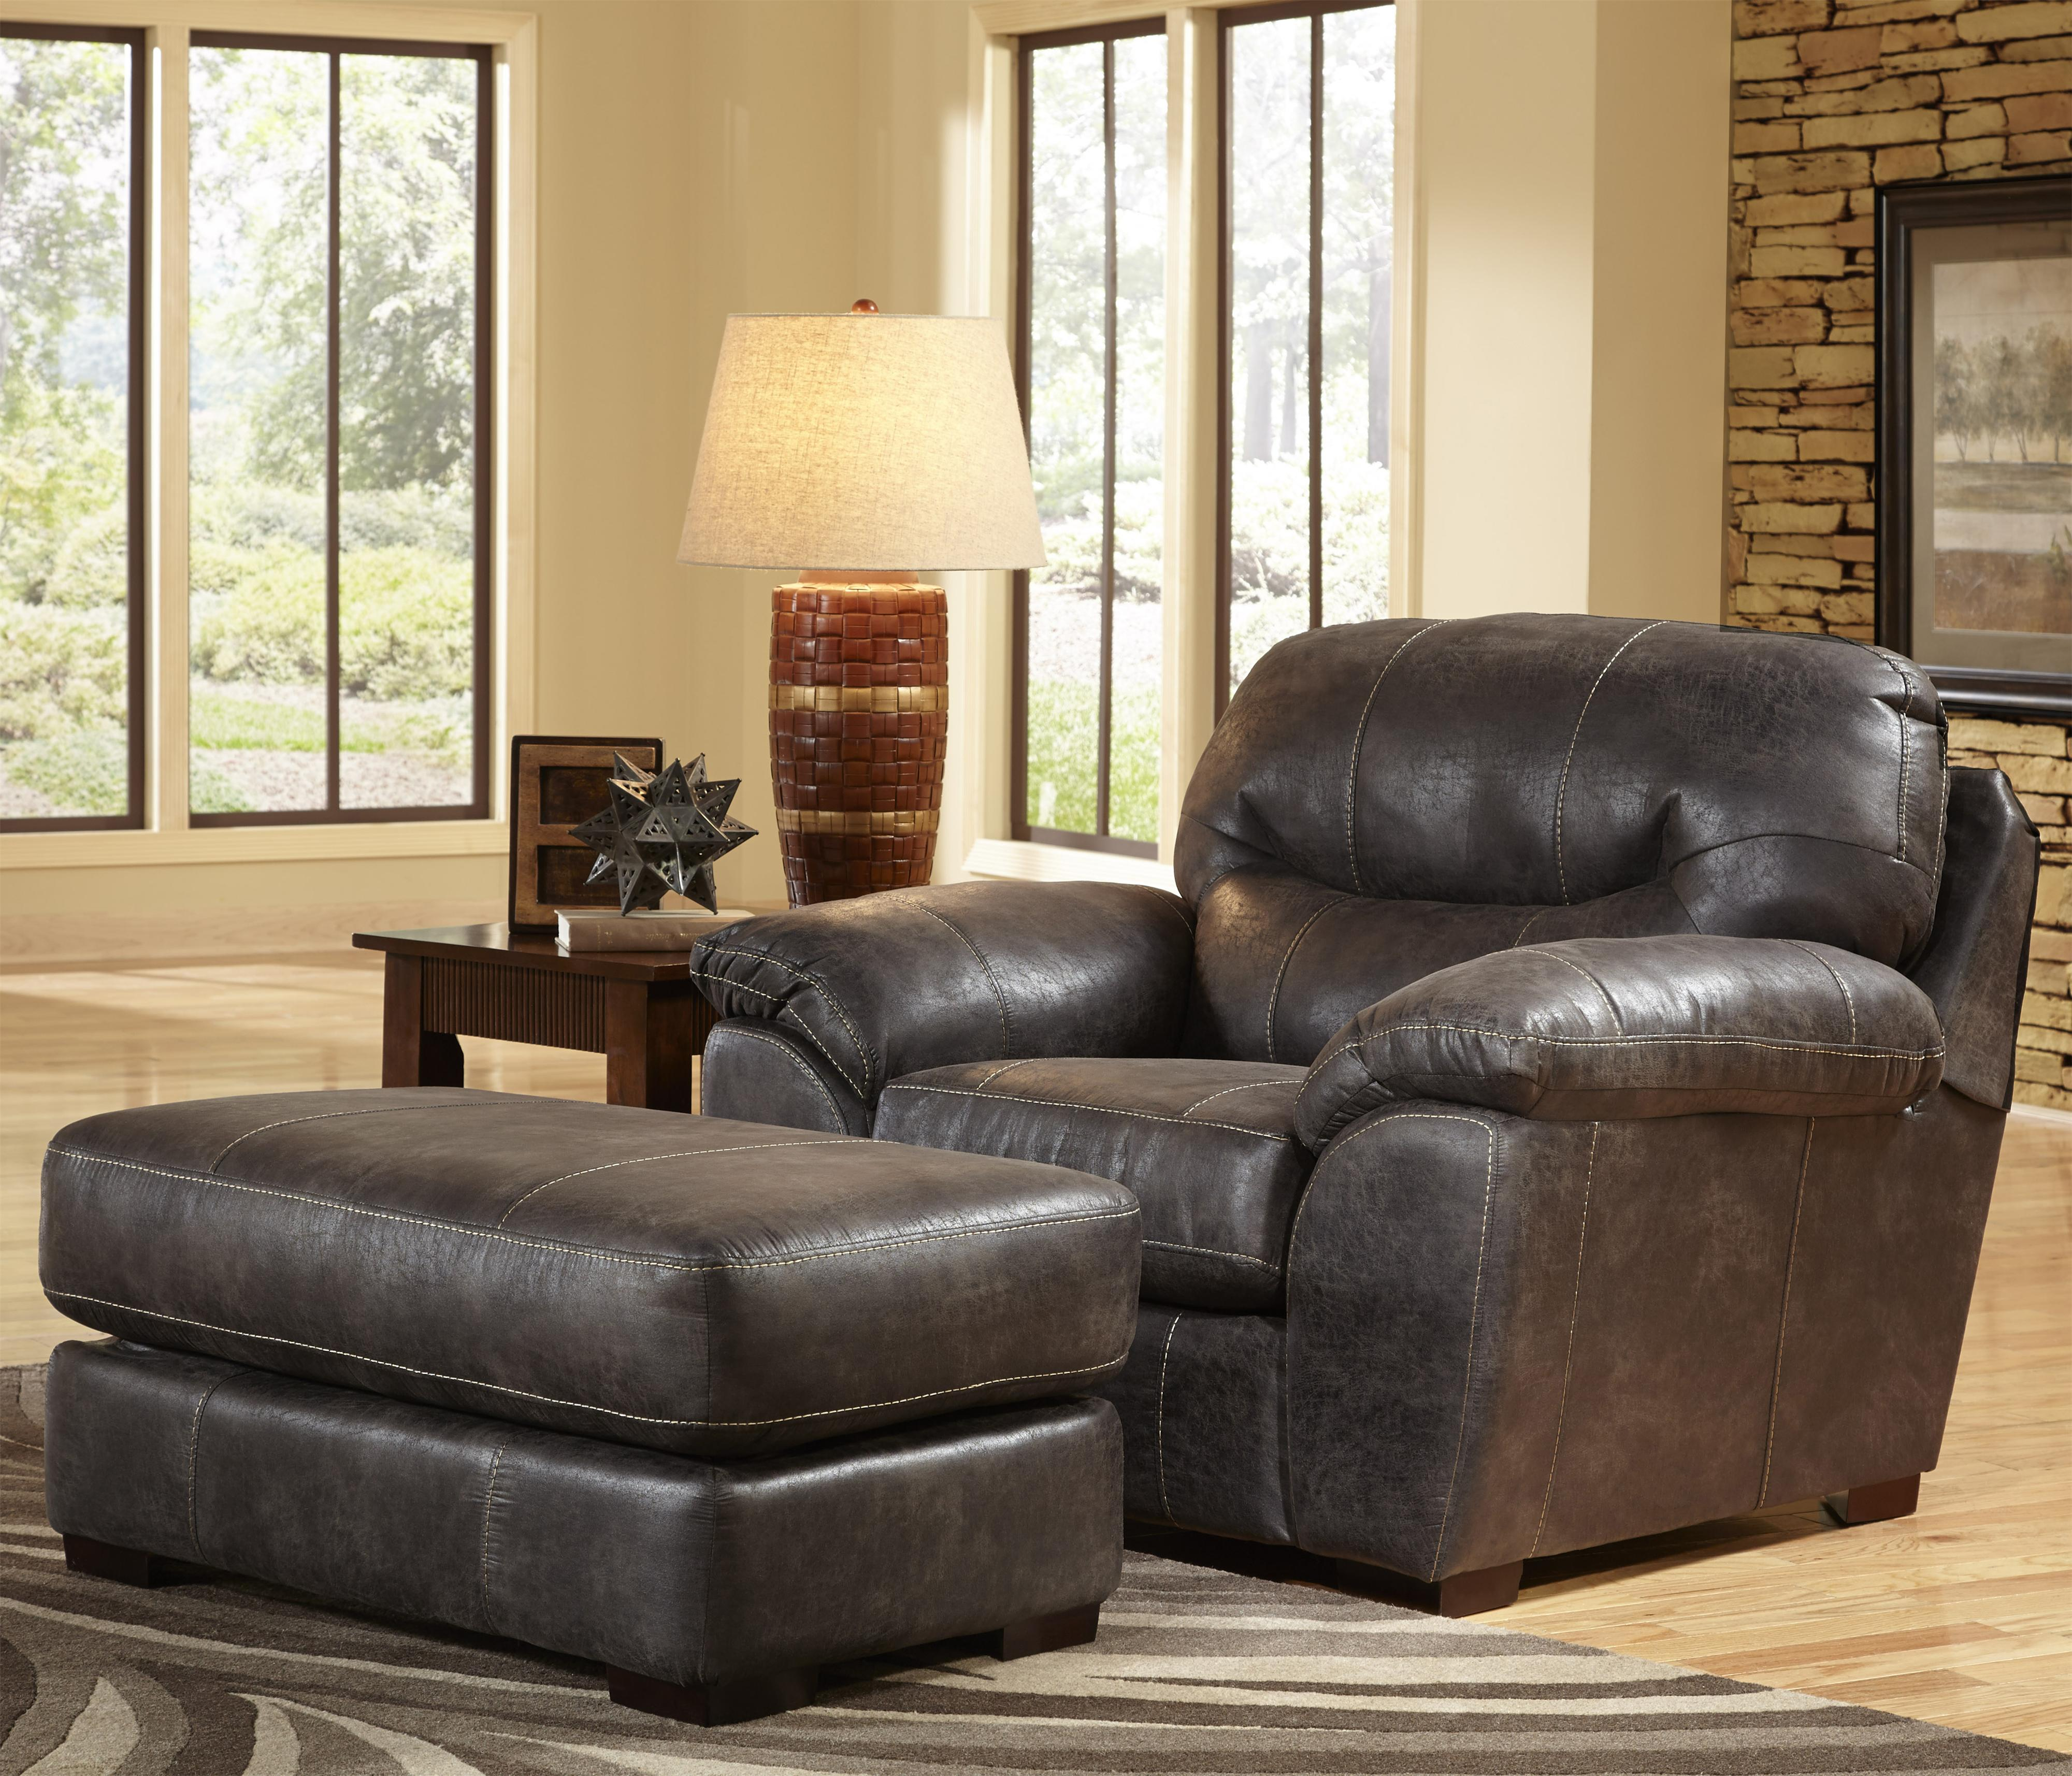 Ottoman In Living Room: Ottoman For Living Rooms And Family Rooms By Jackson